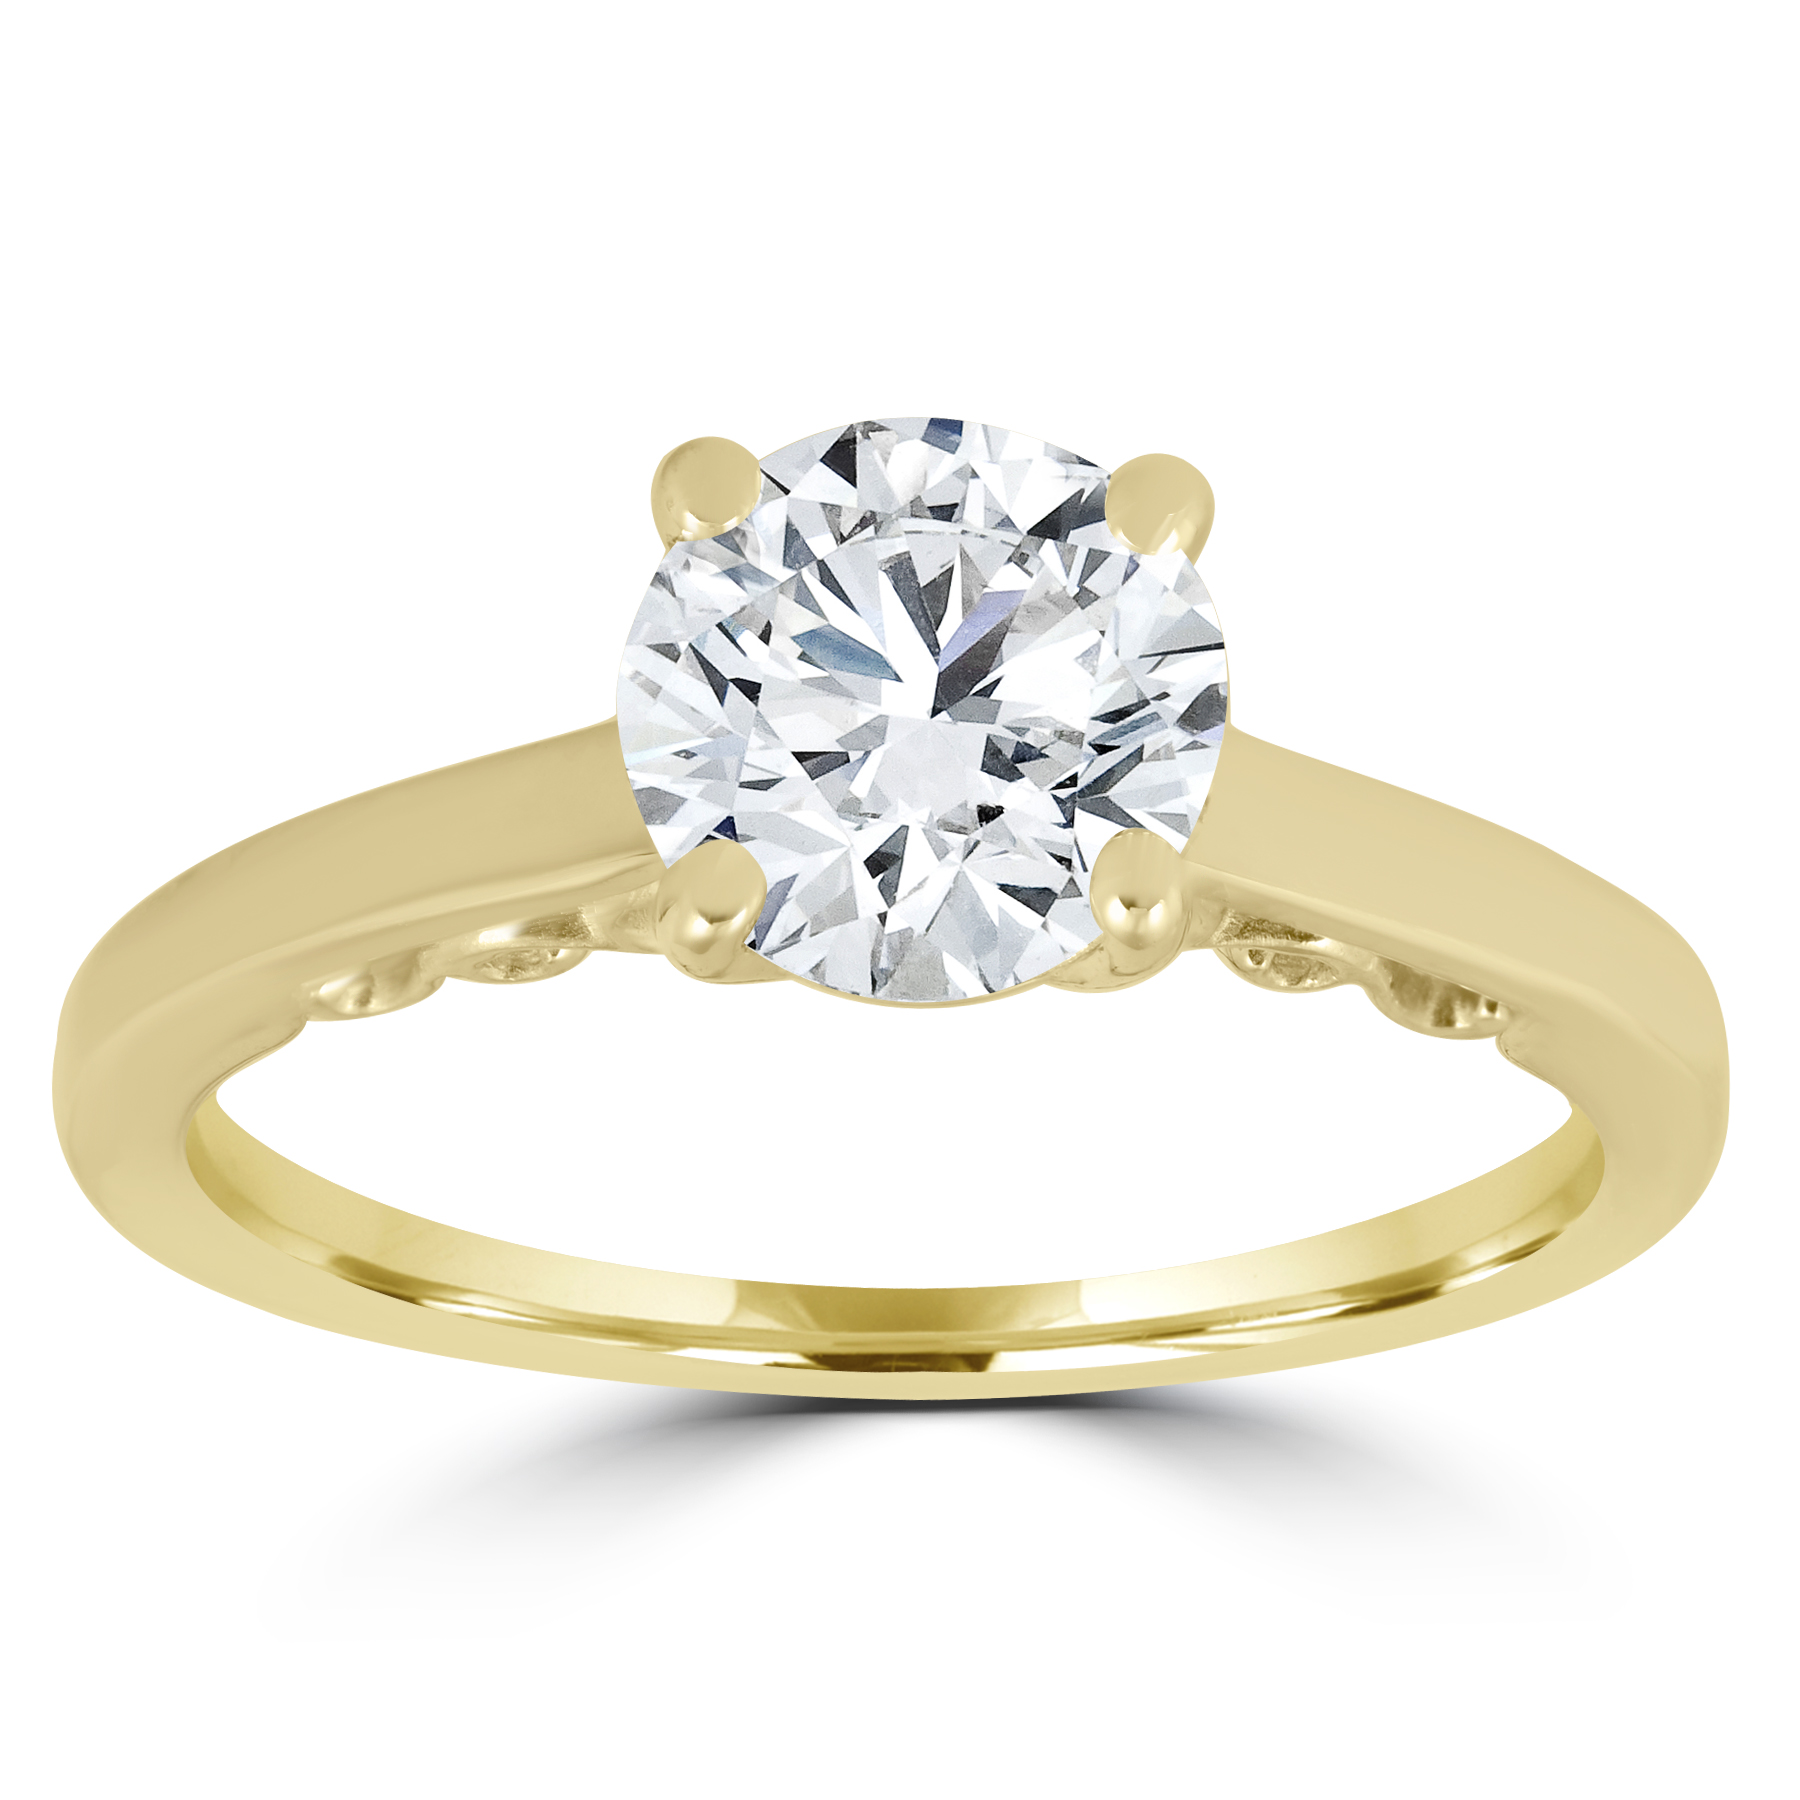 1 ct Diamond Round Brilliant Solitaire Engagement Ring 14k ...